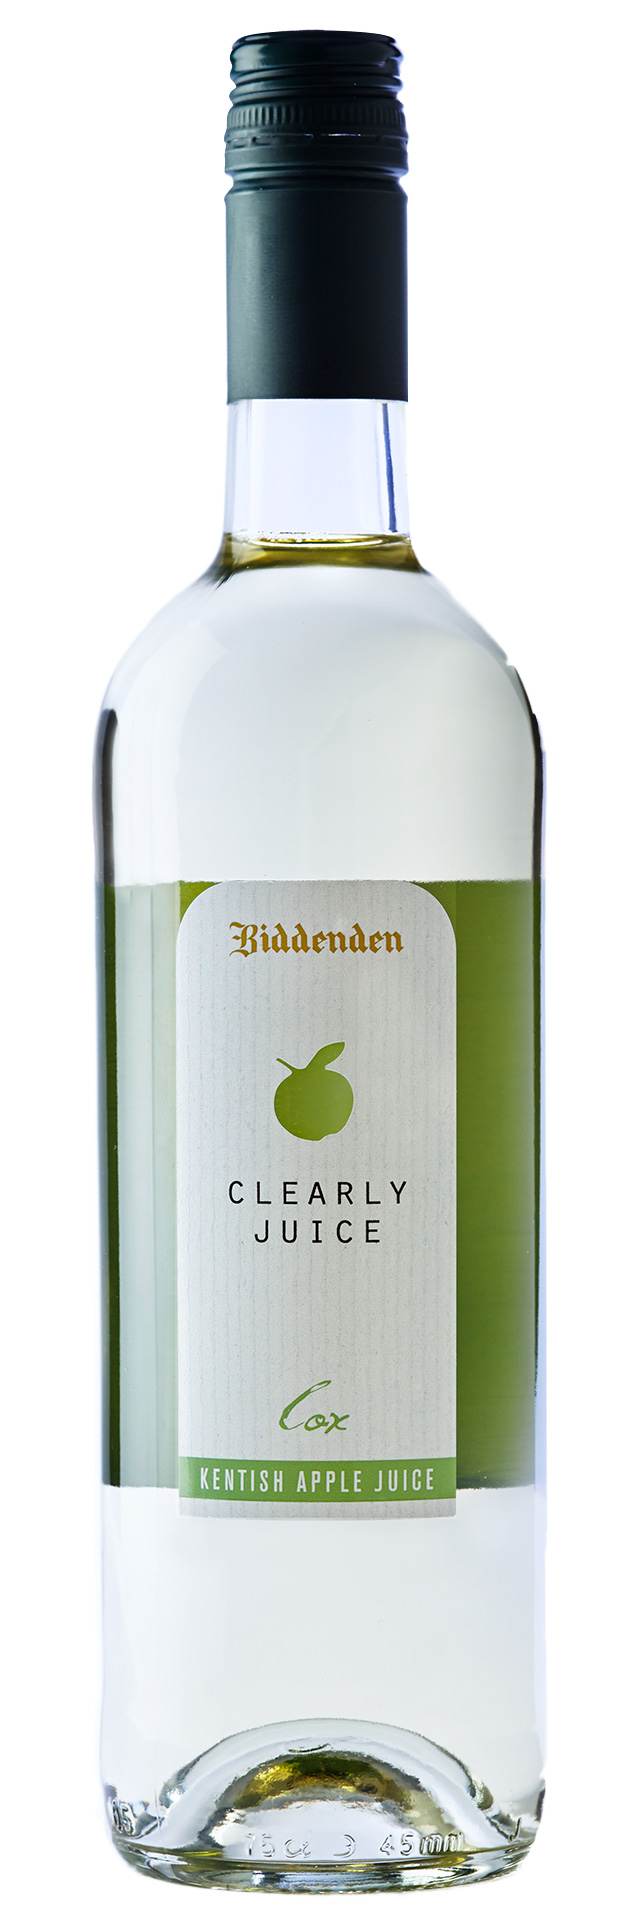 cox-clearly-juice